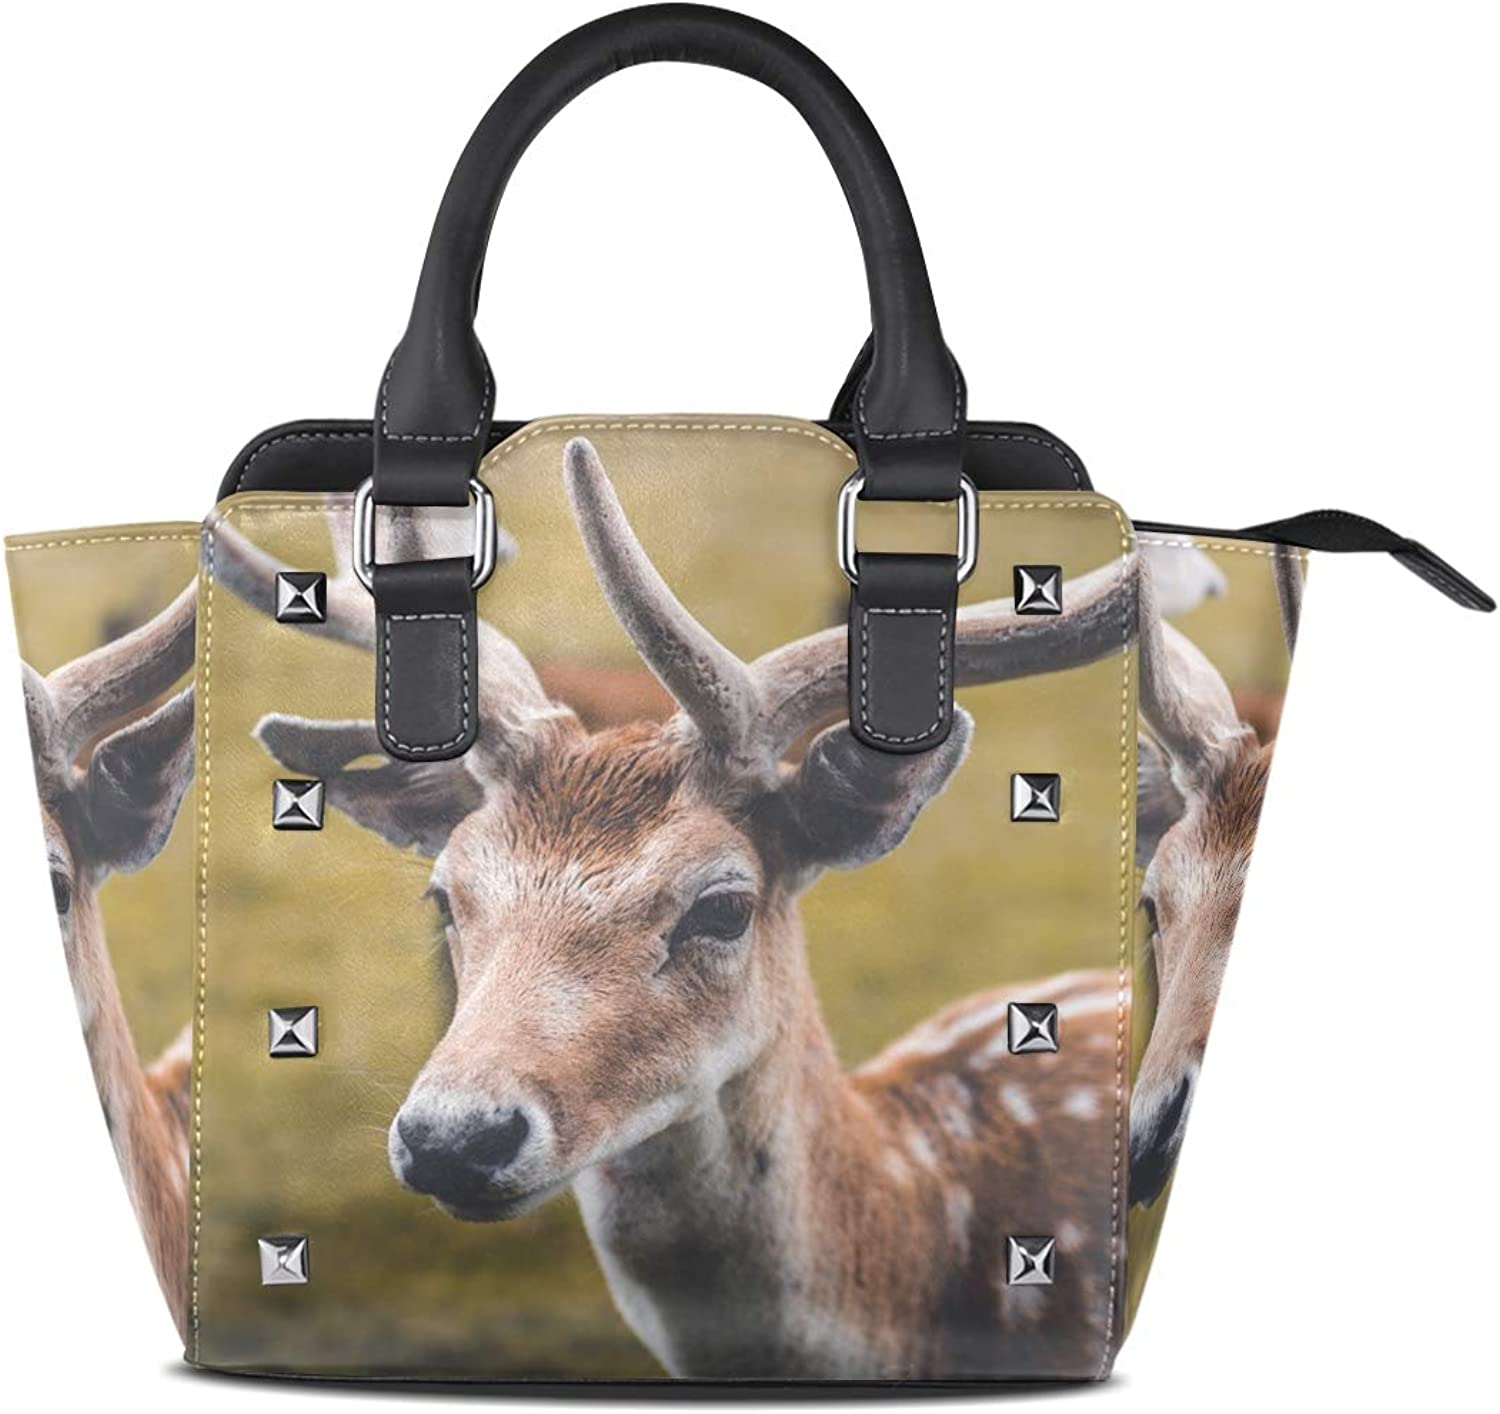 Leather Cute Deer Rivet Handbags Tote Bag Shoulder Satchel for Women Girls